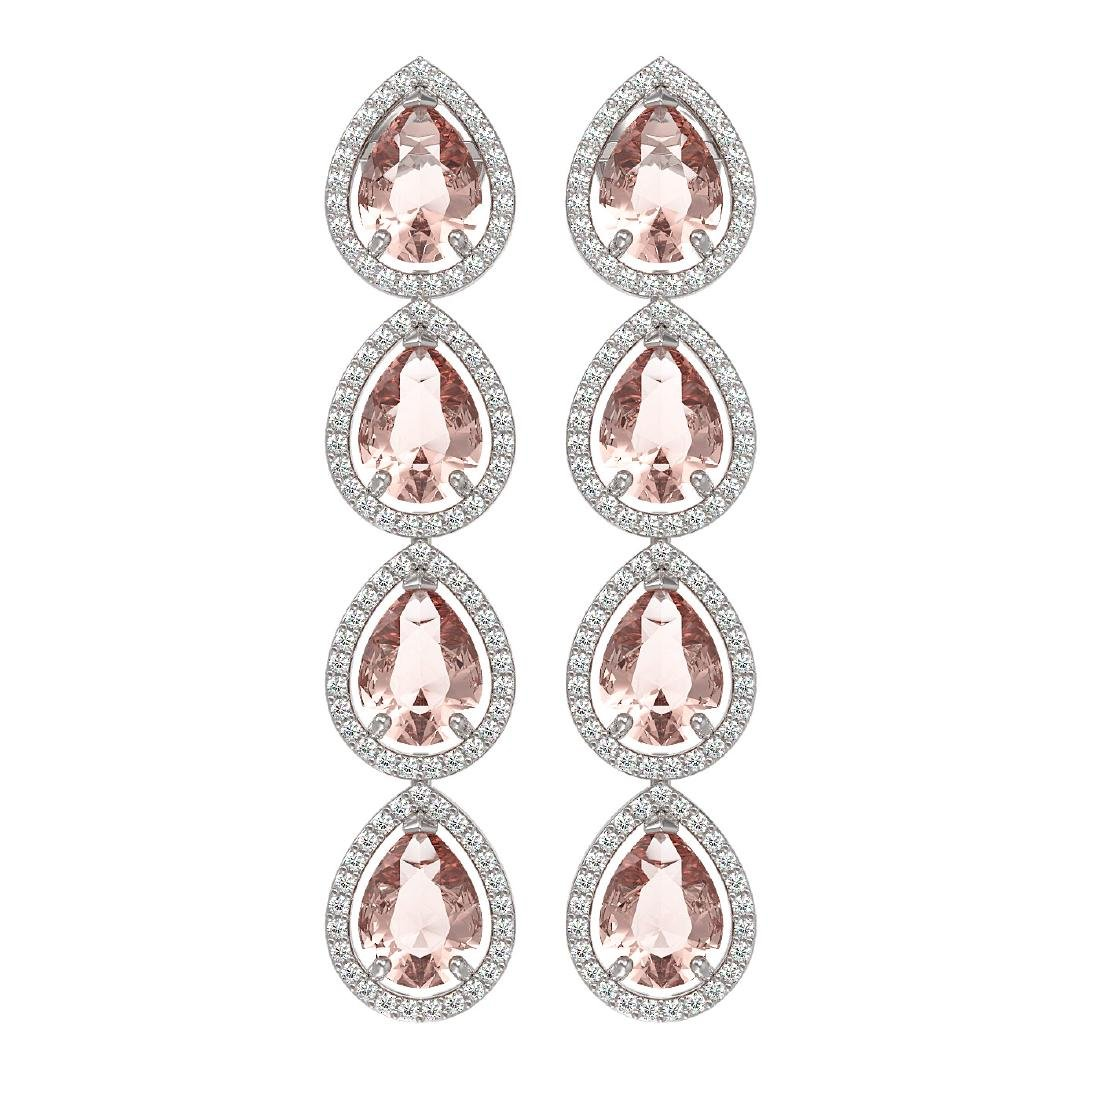 10.4 CTW Morganite & Diamond Halo Earrings 10K White